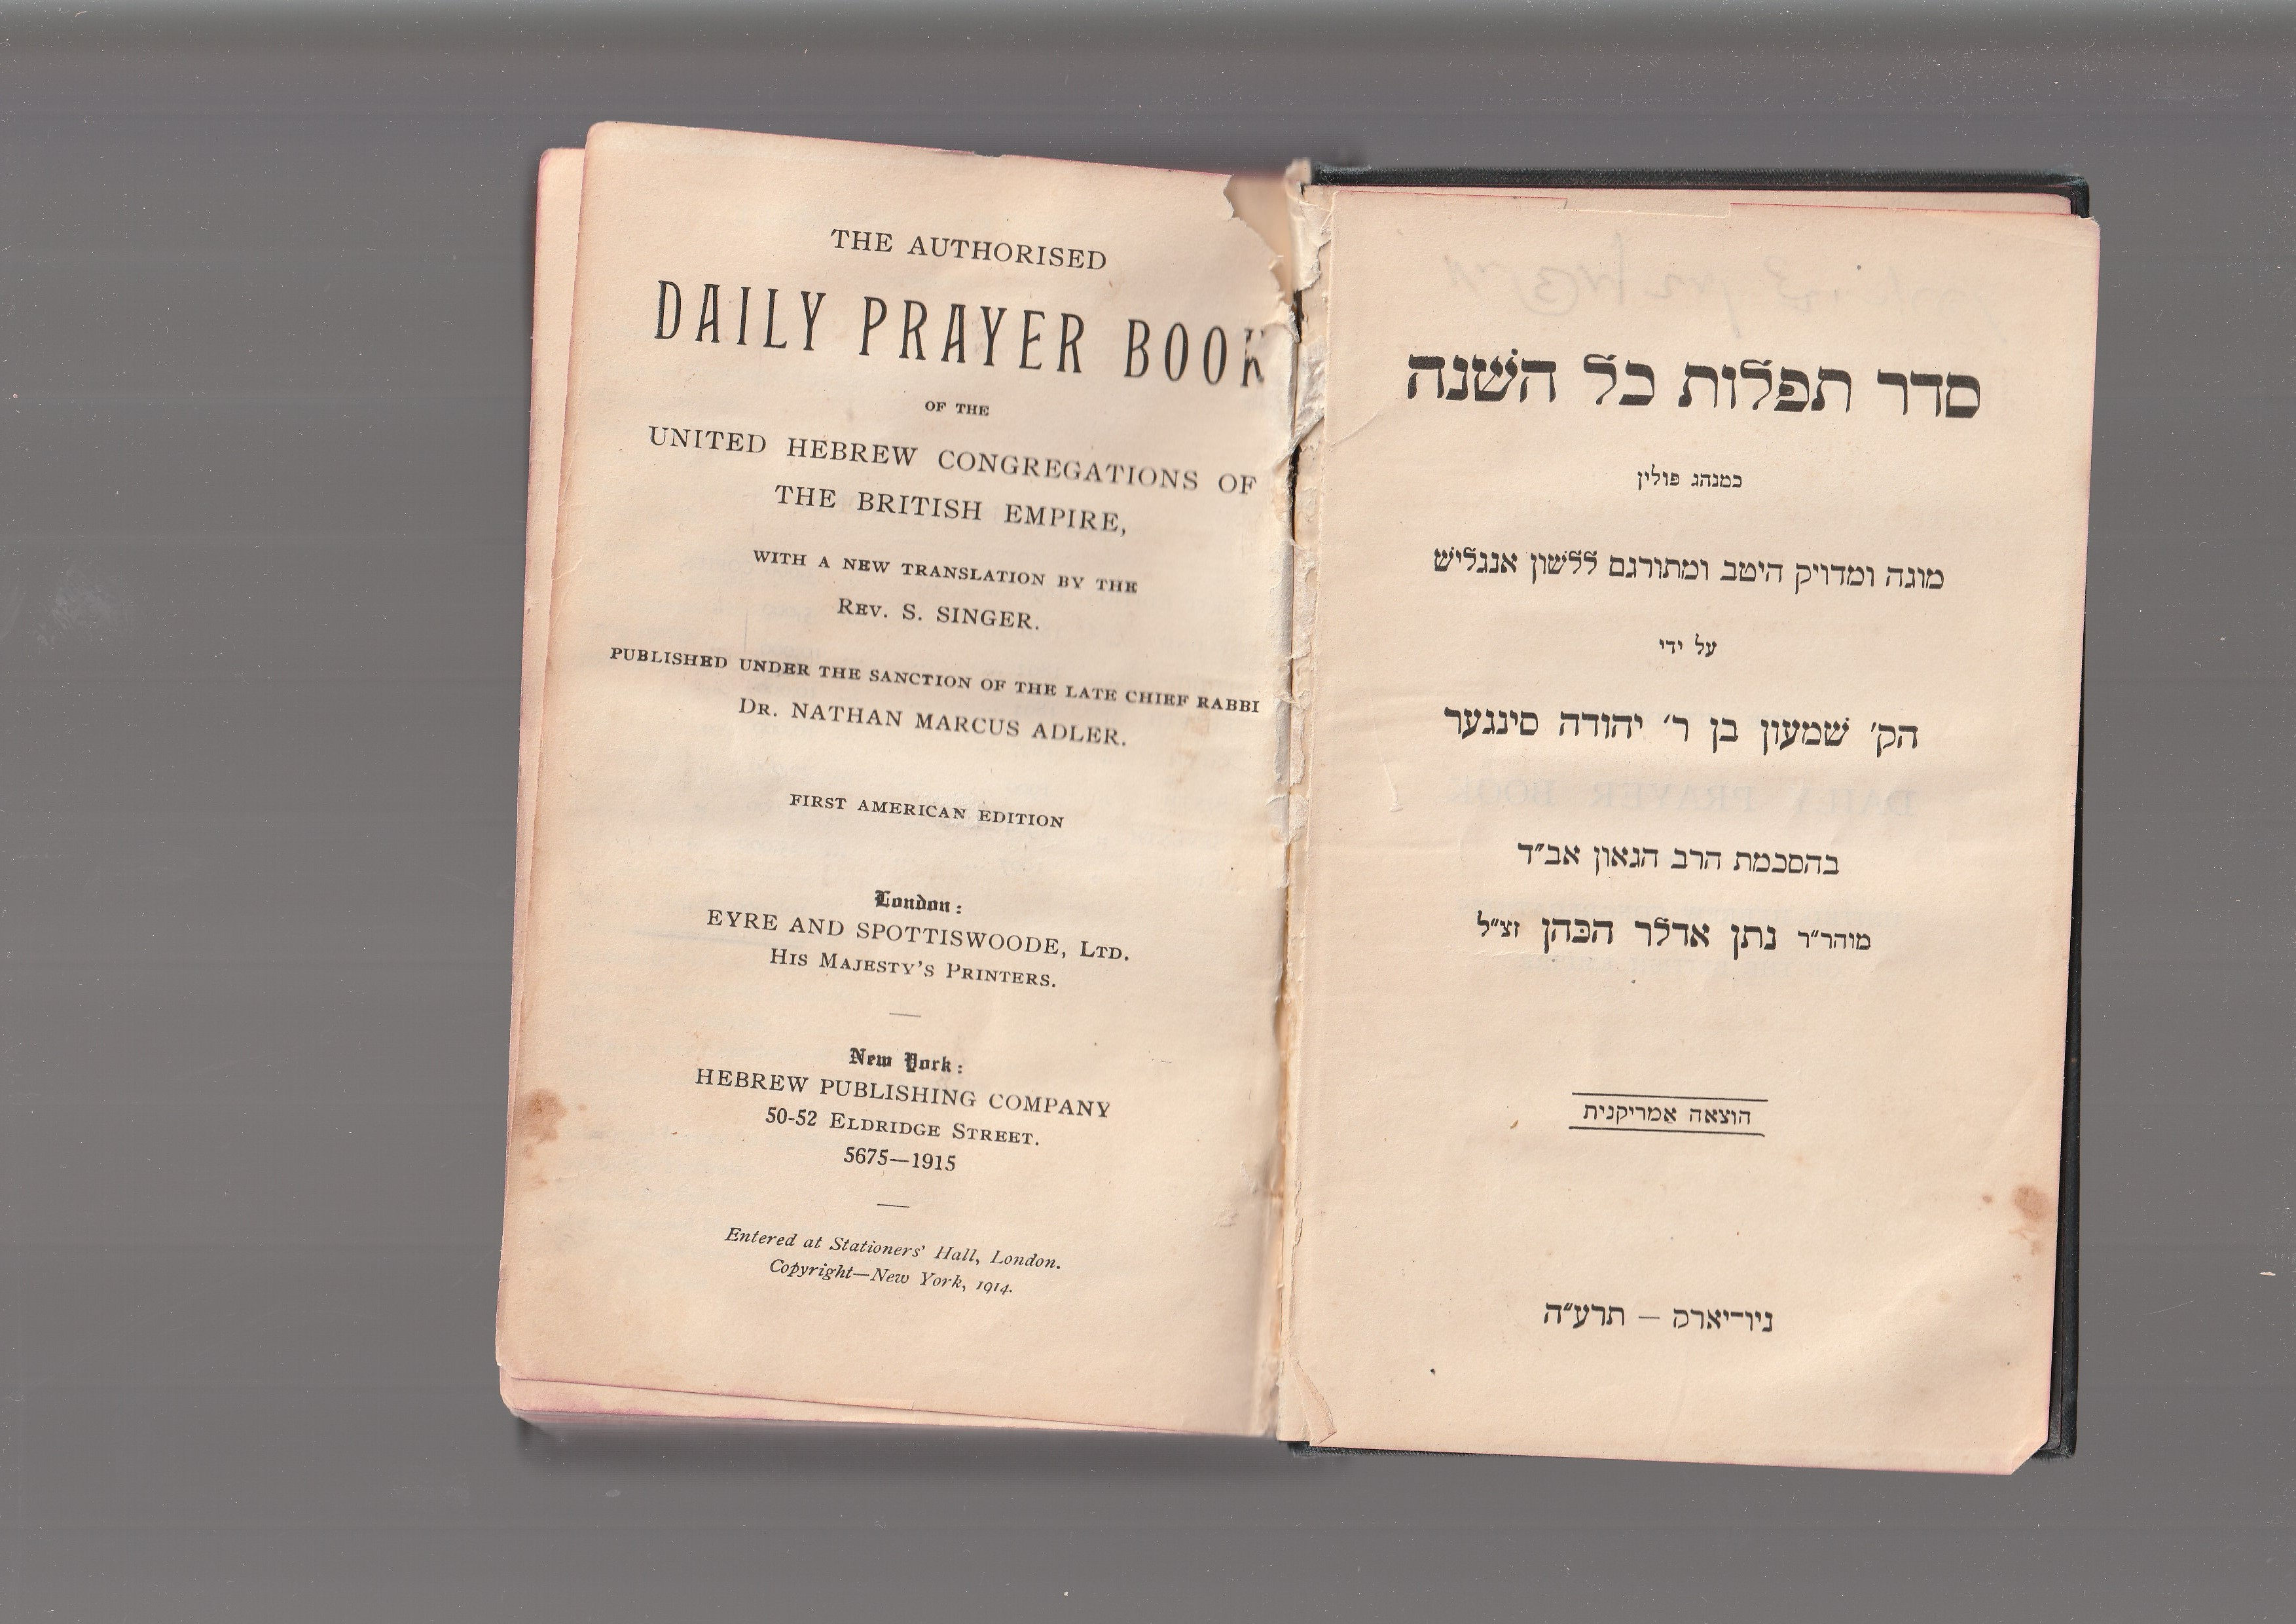 The Authorised DAILY PRAYER BOOK of the